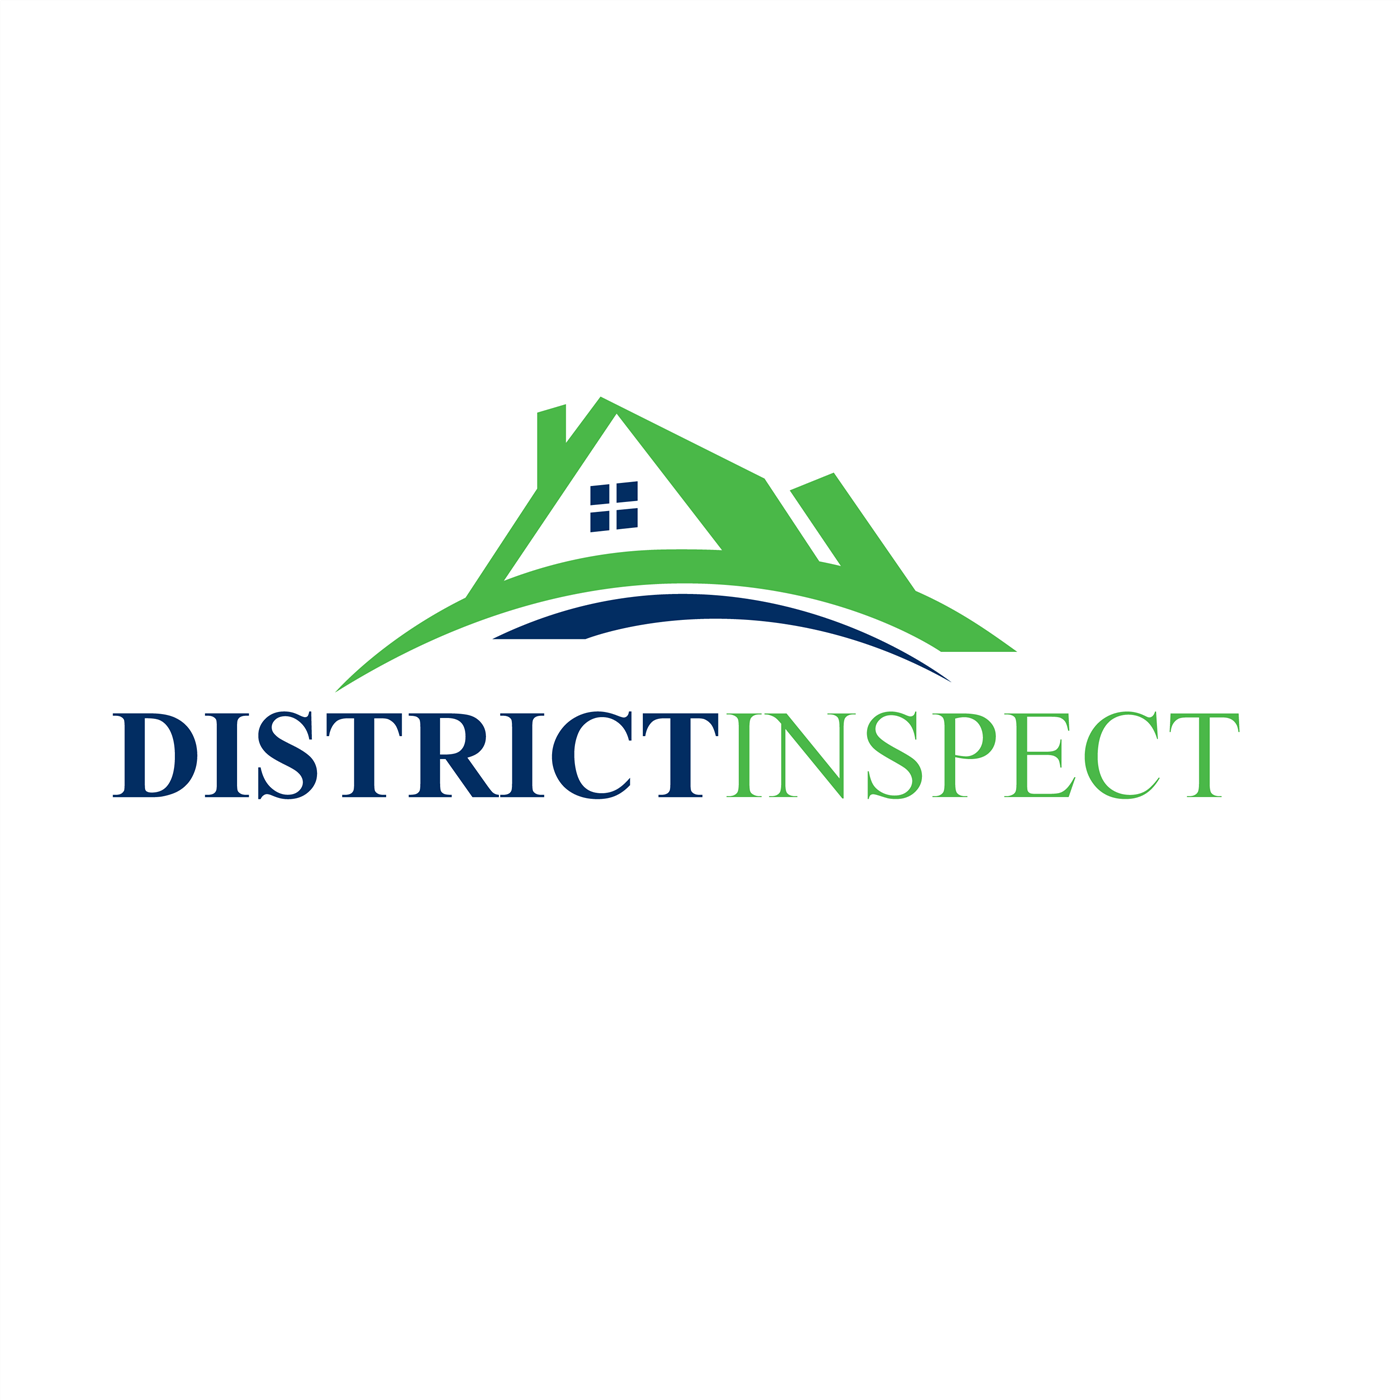 Home Inspection Service